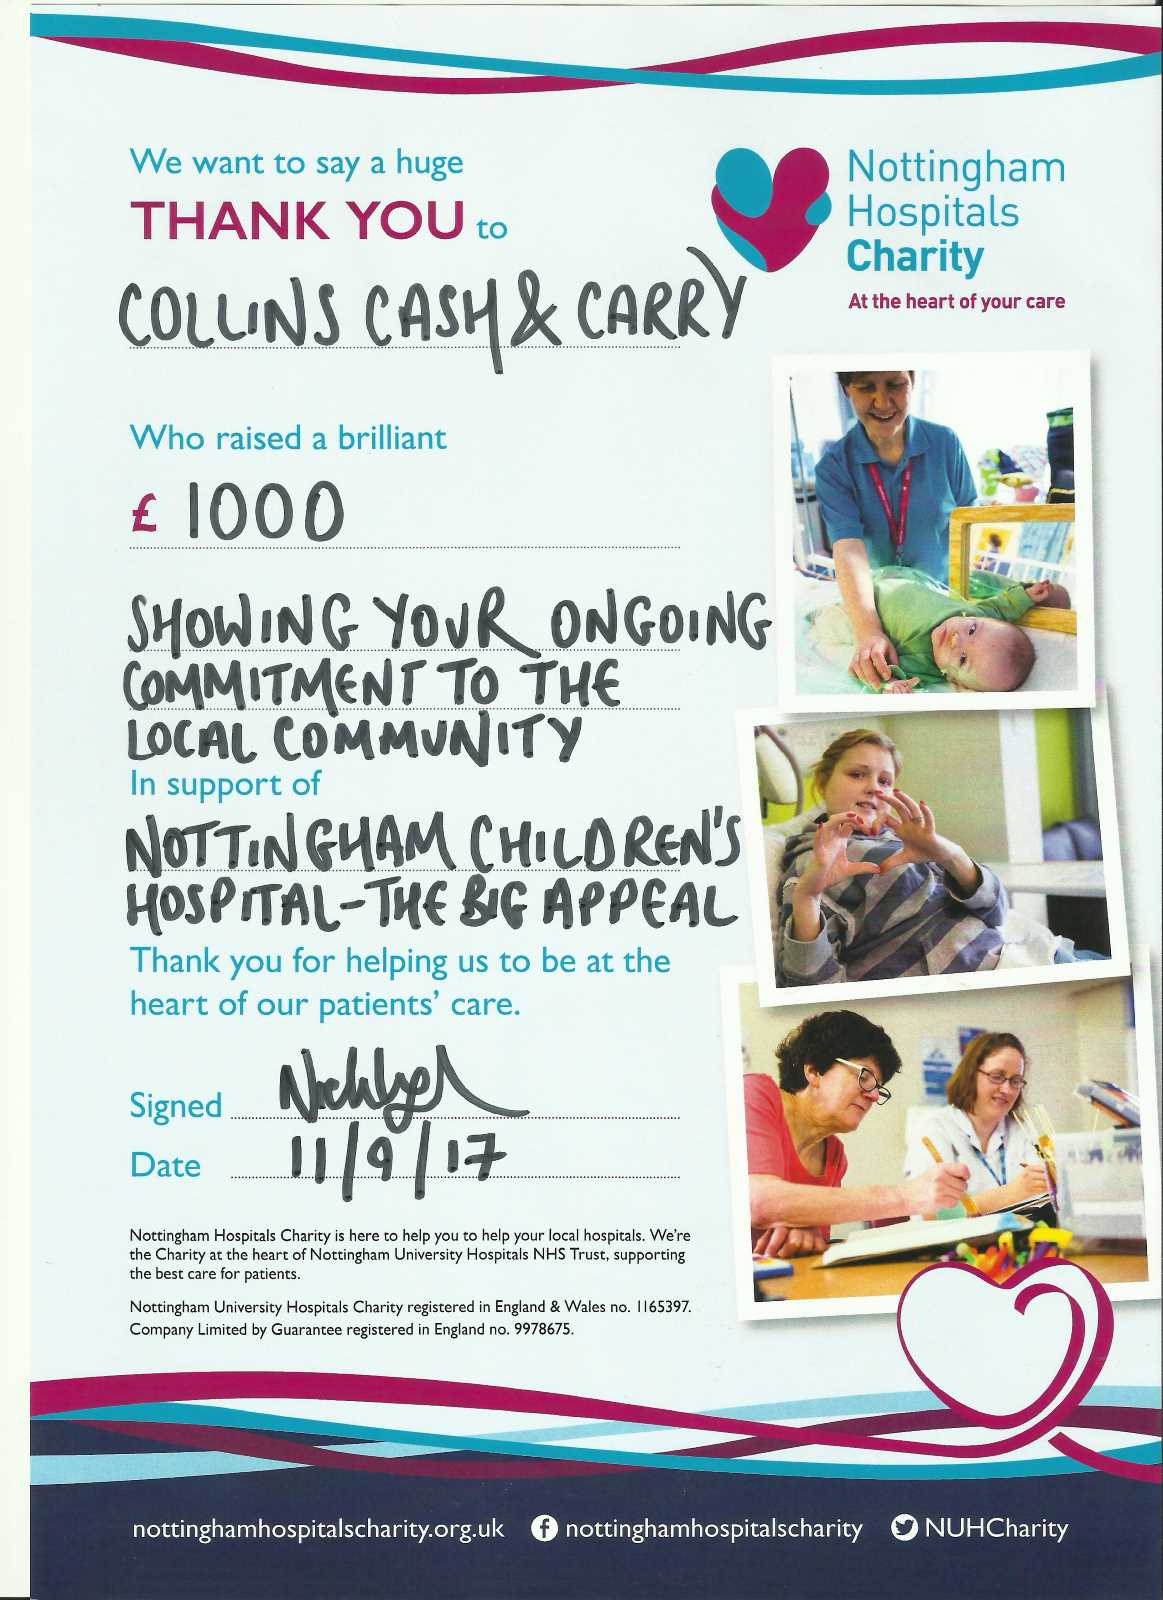 Our support for local charity projects: Nottingham Hospitals Charity